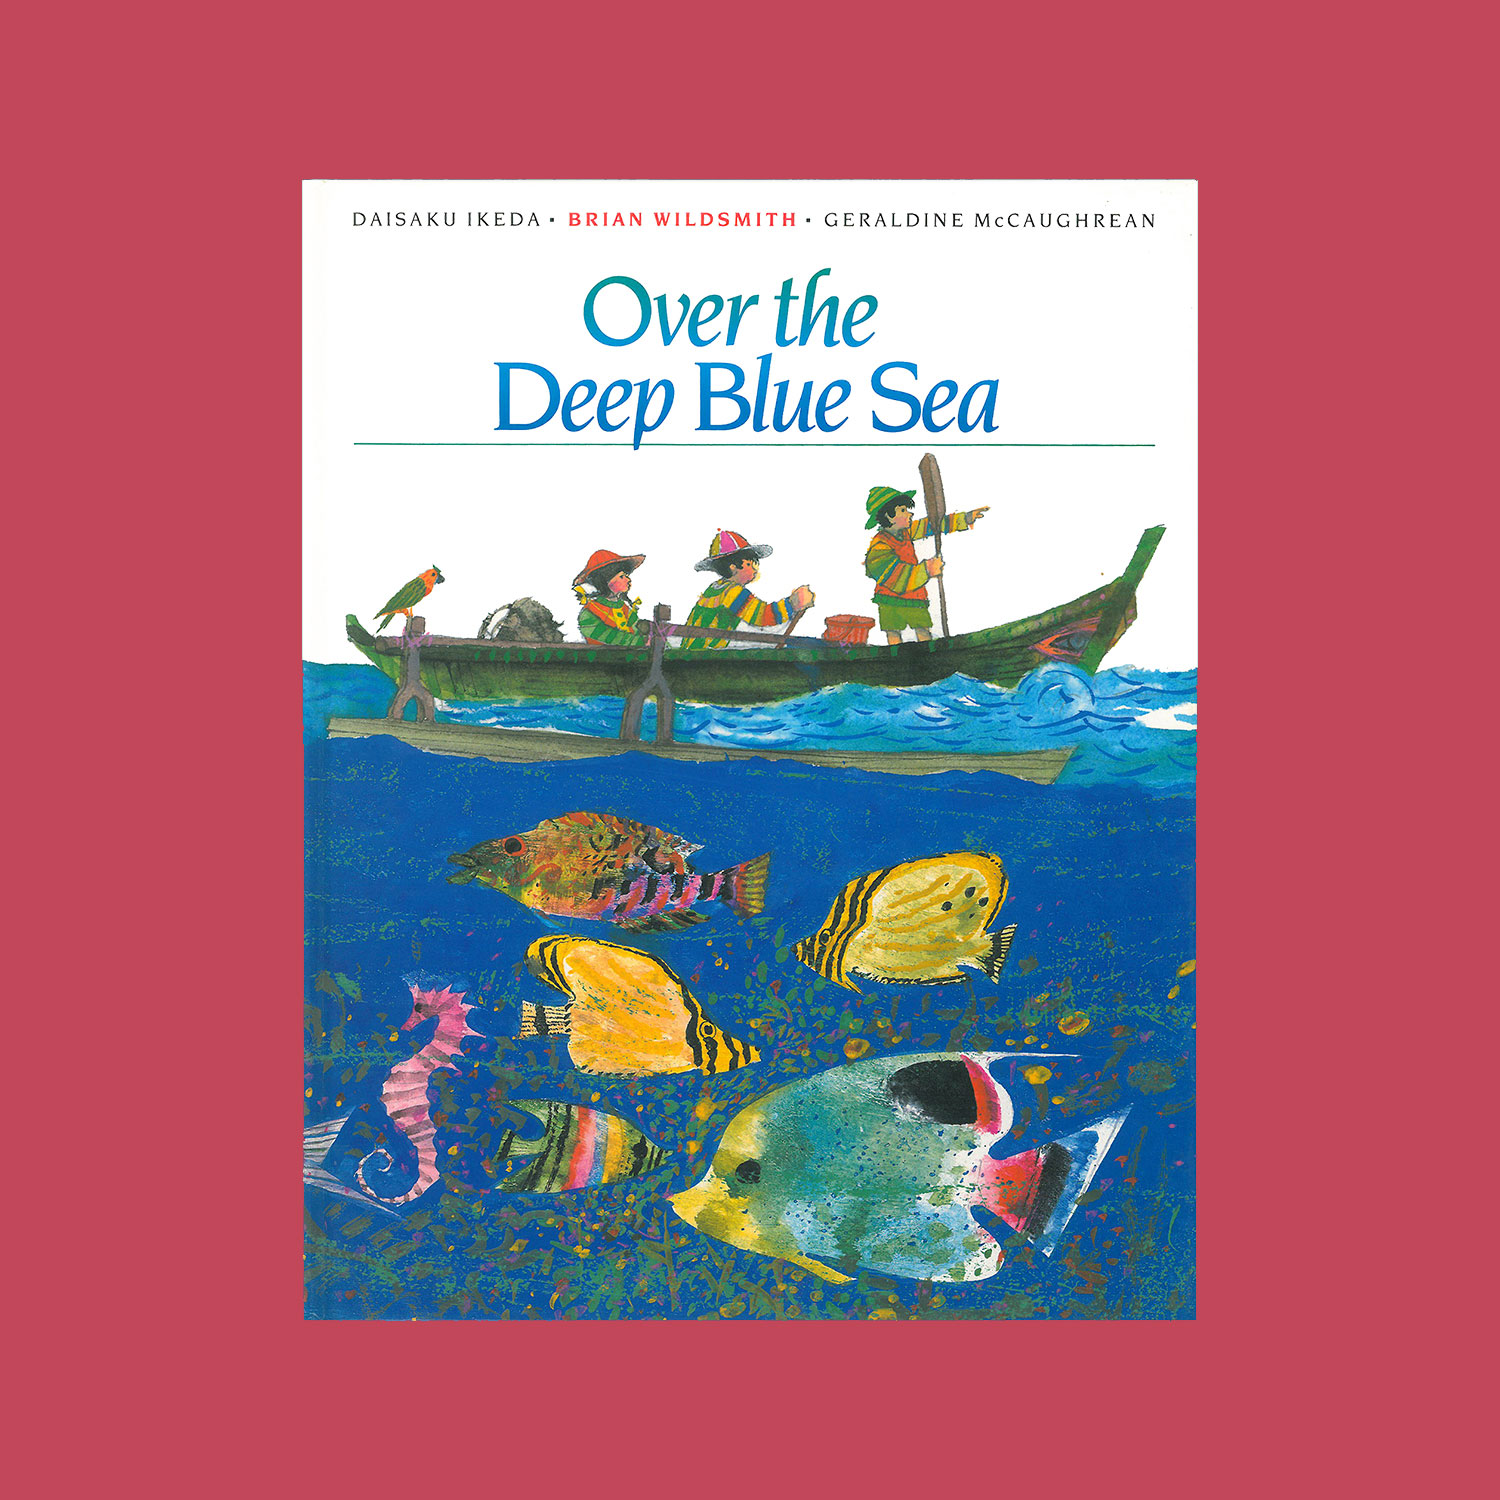 """OVER THE DEEP BLUE SEA - Written by Daisaku Ikeda, translated into English by Geraldine McCaughrean, illustrated by Brian Wildsmith. 1992""""Akiko and Hiroshi are lonely on the island to which their parent's work has brought them until they meet Pablo, who shows them the tropical world's entrancing secrets, teaches them paddle and outrigger canoe, and shares the delights of a coral reef… Wildsmith has outdone himself in splendid paintings of a lush tropical isle aglow between a richly luminous sky and a gloriously beautiful sea. It's good, too, to have the Japanese point of view on the lingering resentments born of WW2. A useful multicultural contribution that's a joy to behold.""""Kirkus Reviews"""